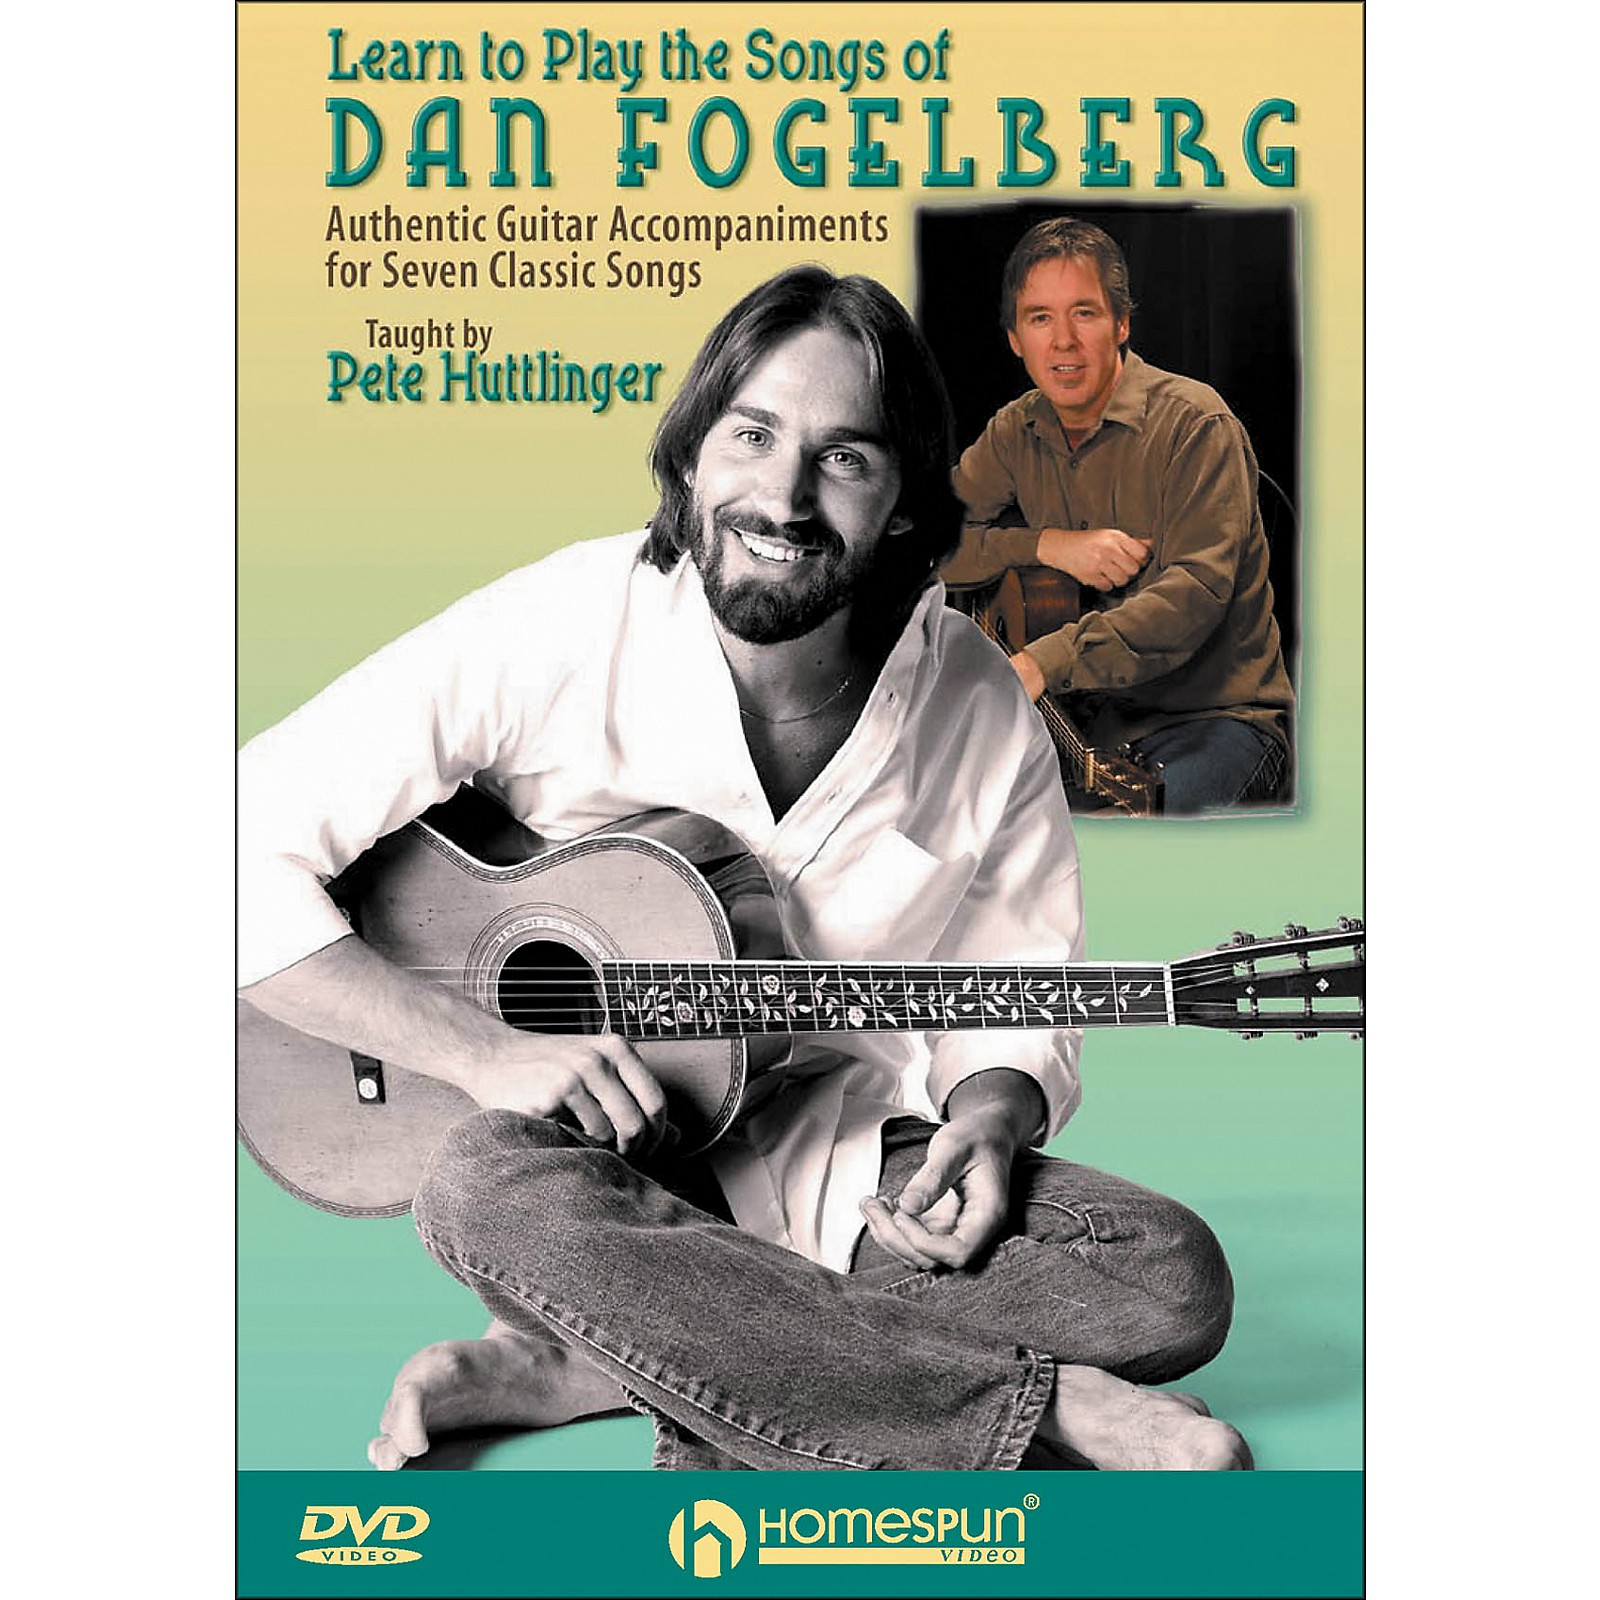 Homespun Learn To Play The Songs Of Dan Fogelberg DVD By Pete Huttlinger